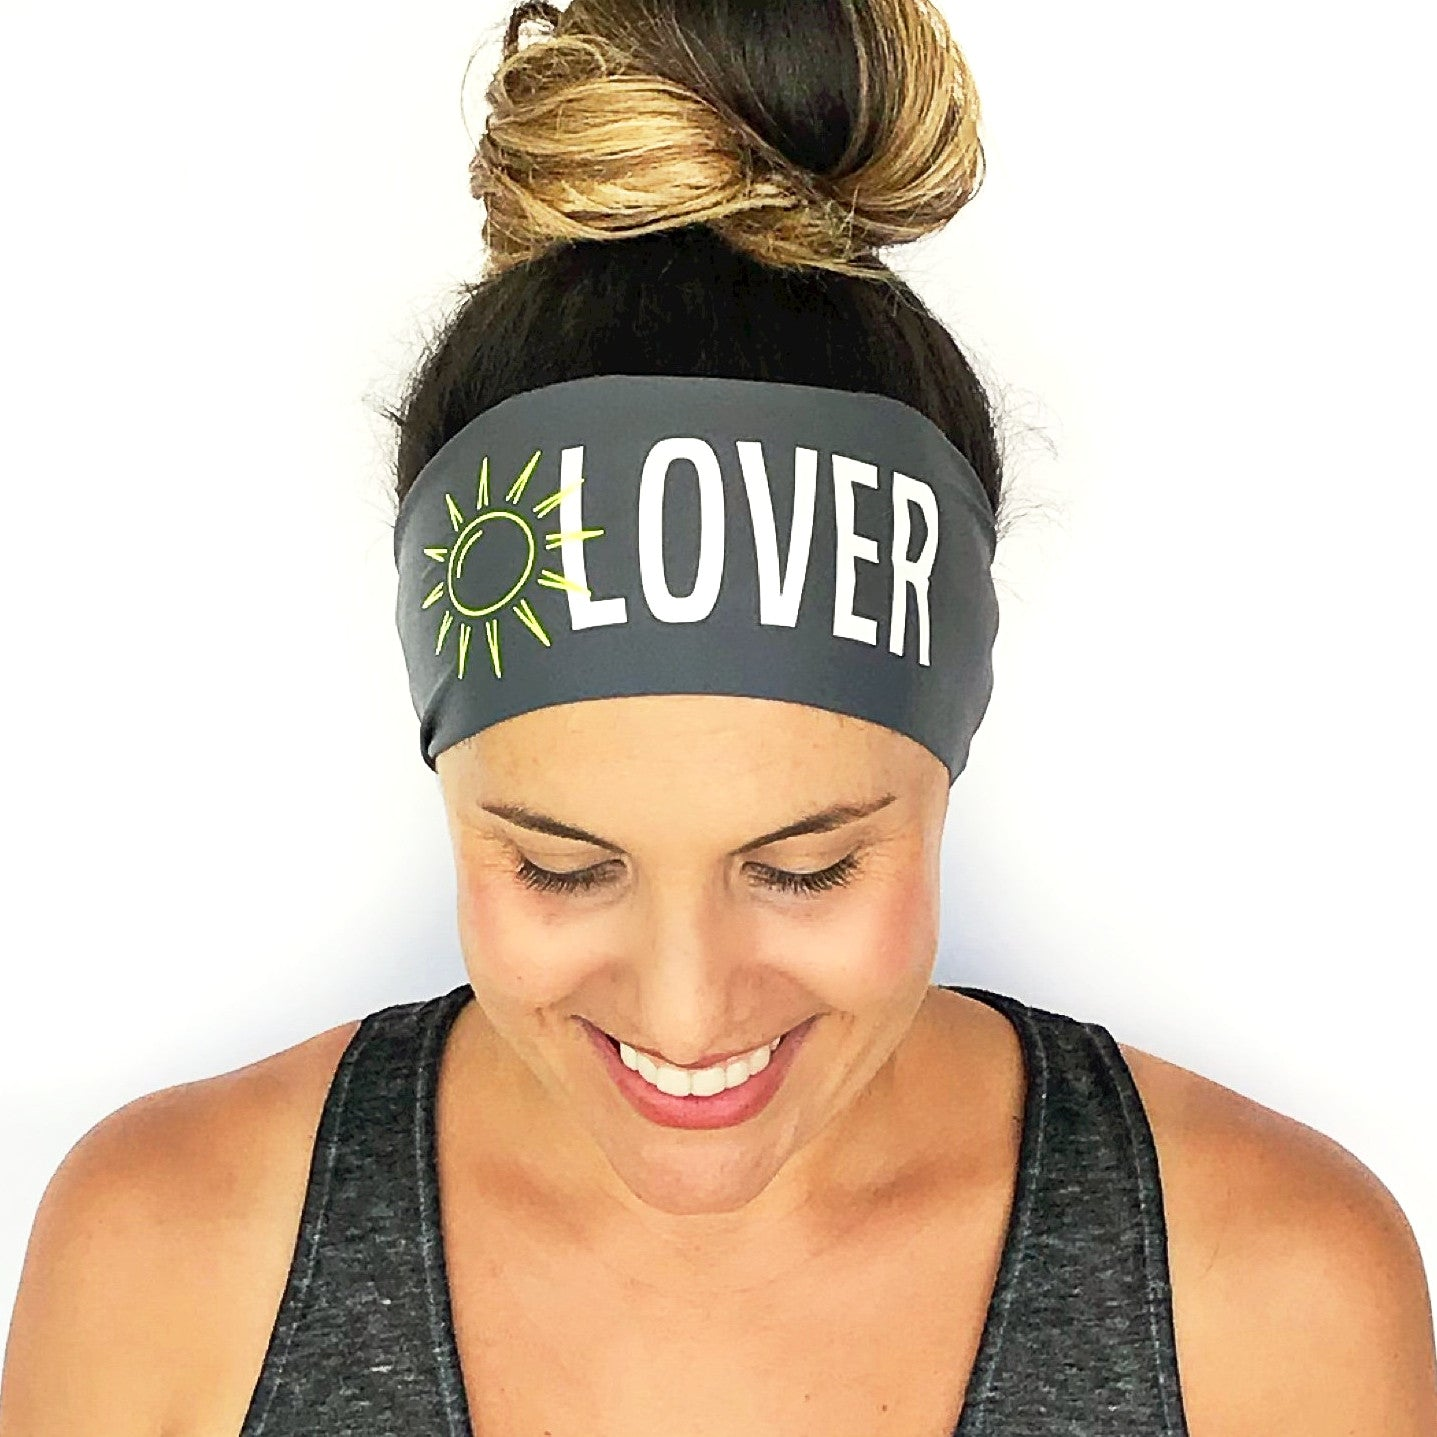 Sun Lover Scripted Headband